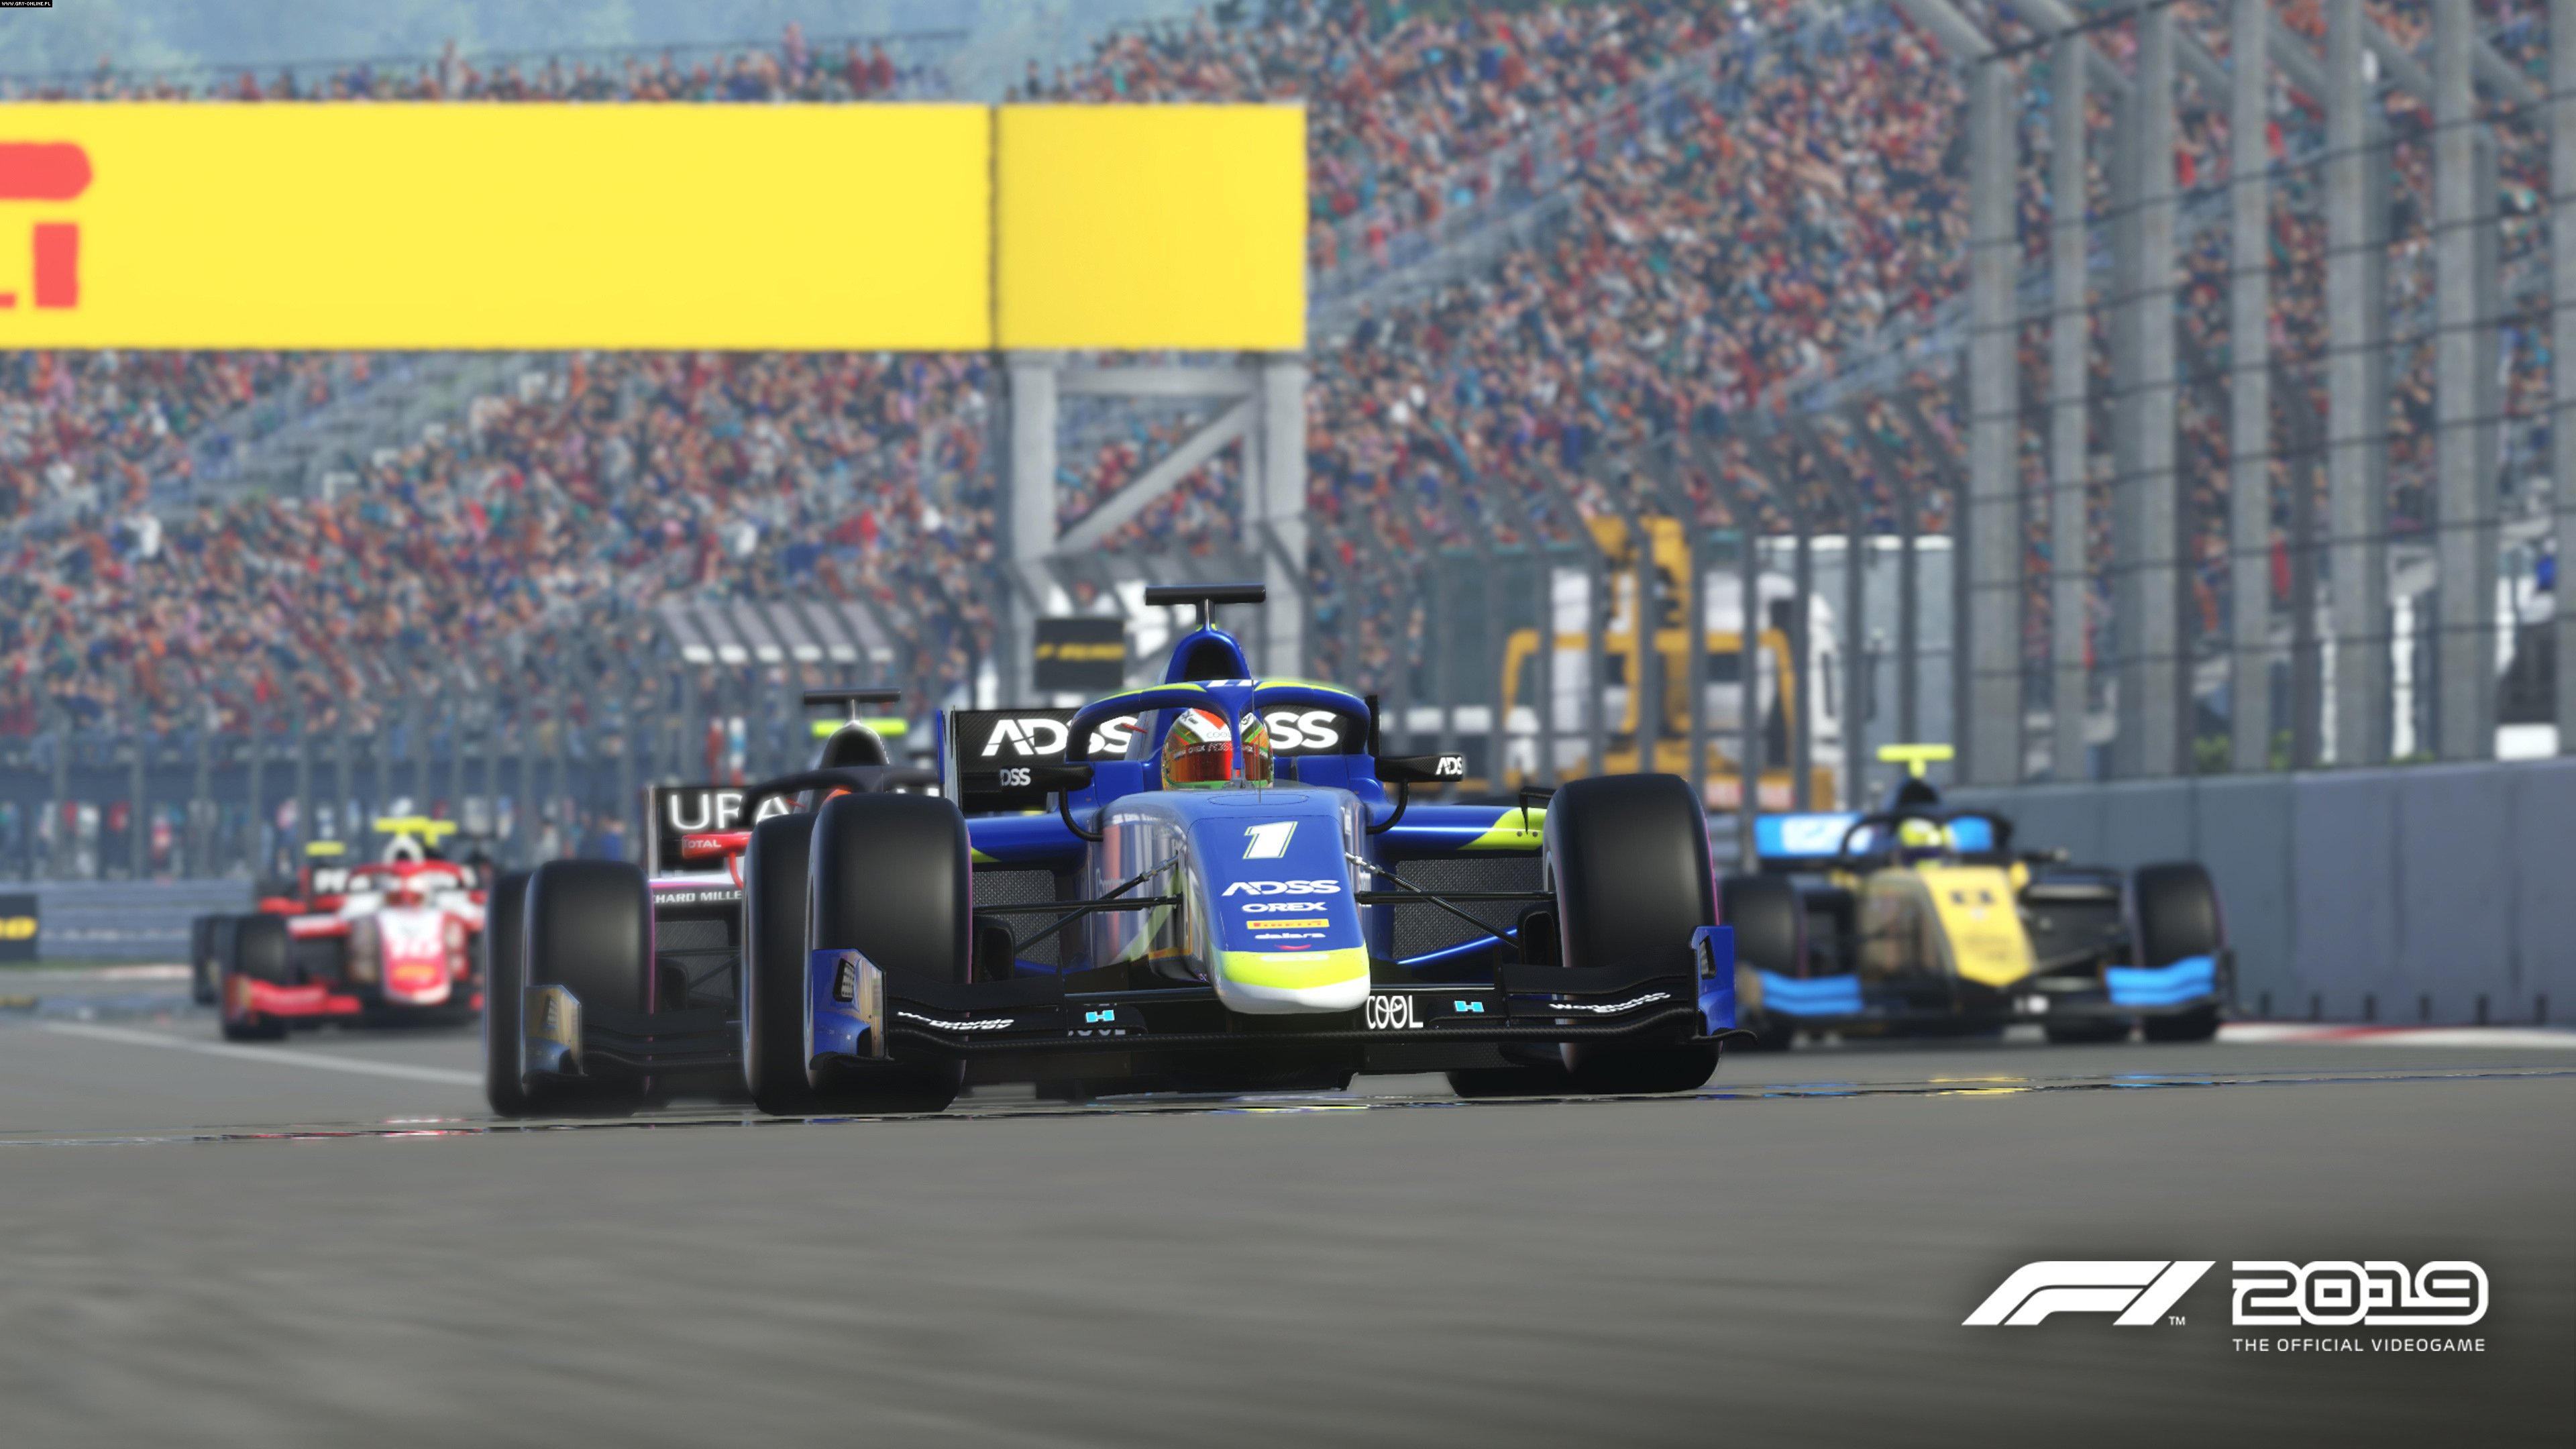 F1 2019 PC, PS4, XONE Games Image 11/104, Codemasters Software